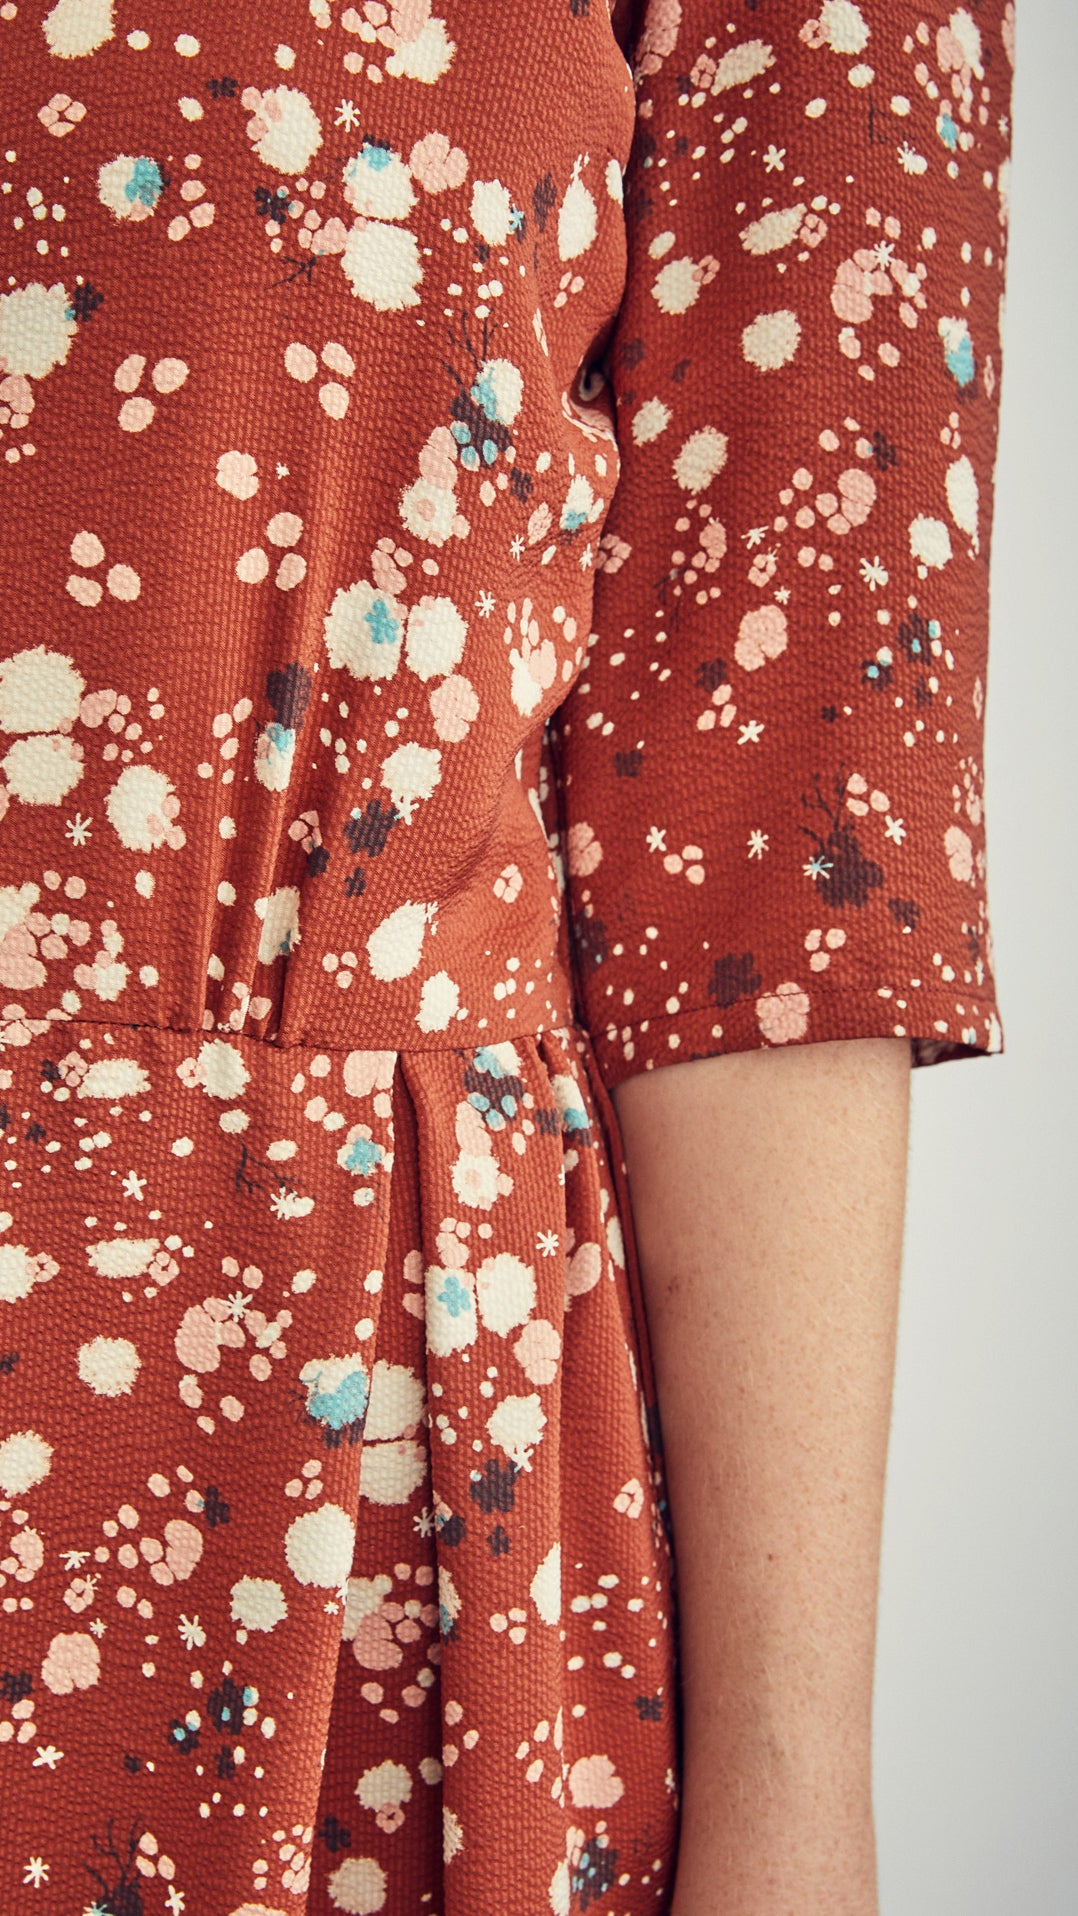 croquet dress / rust storm